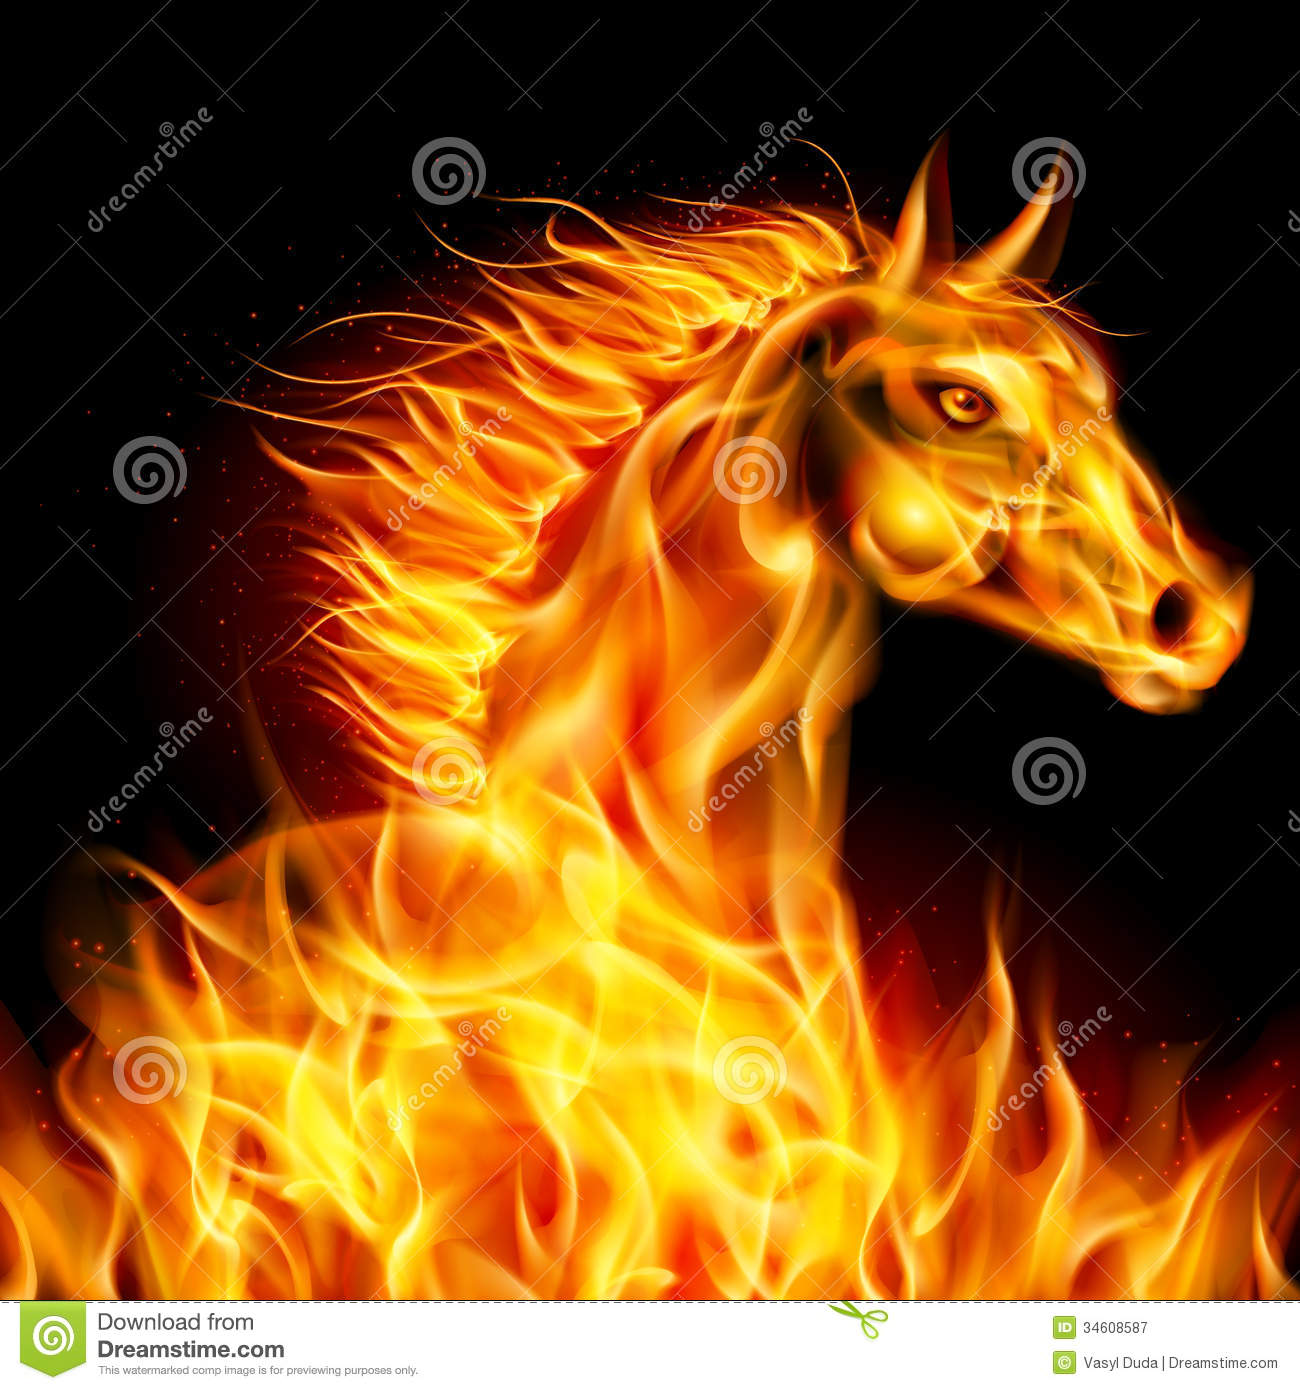 Fire Horse. Royalty Free Stock Photography - Image: 34608587